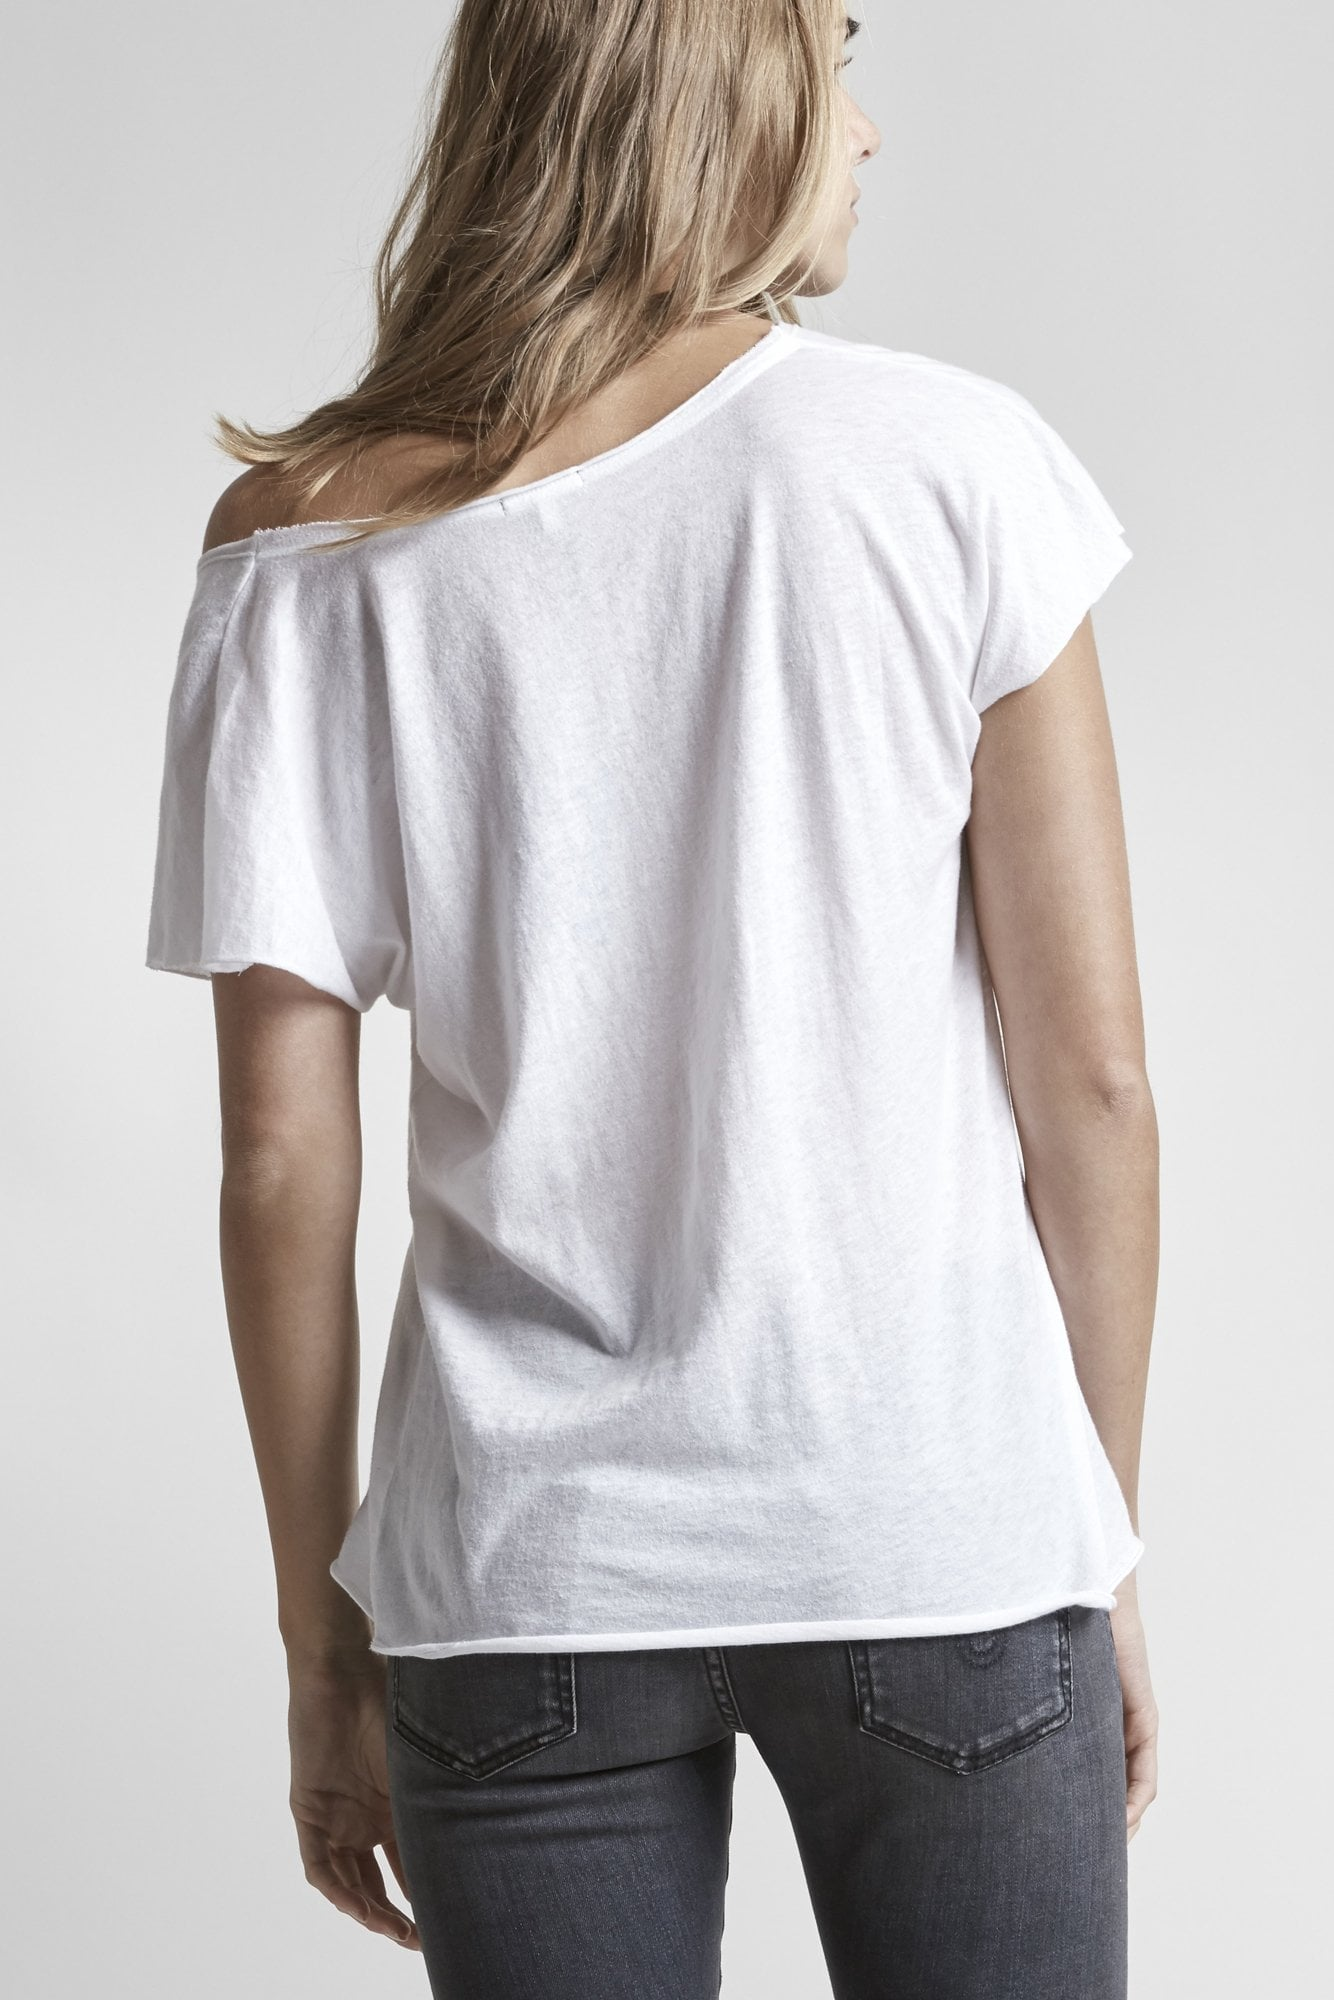 Asymmetrical V-Neck Kurt Tee - White